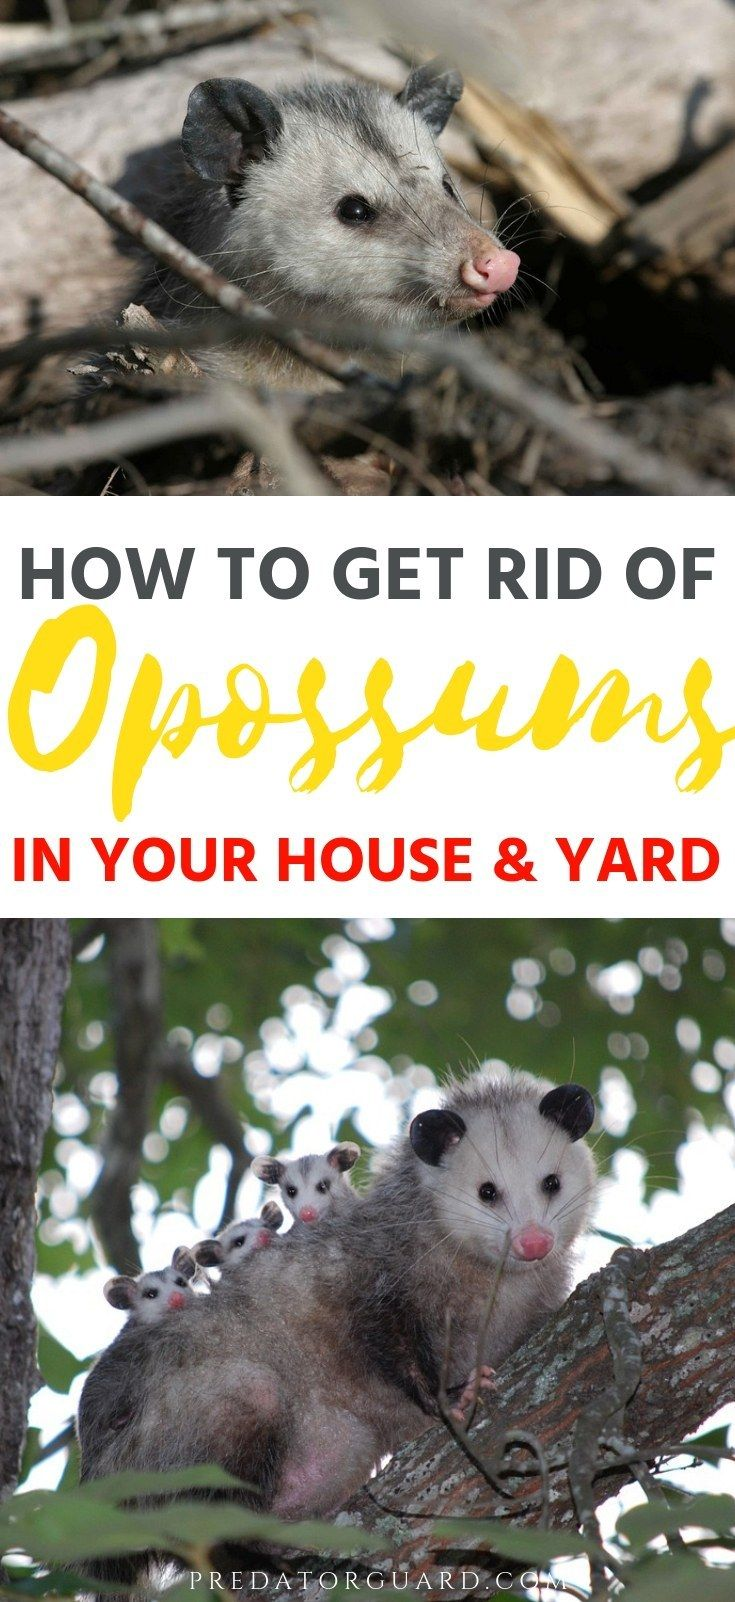 How to get rid of opossums in your house and yard